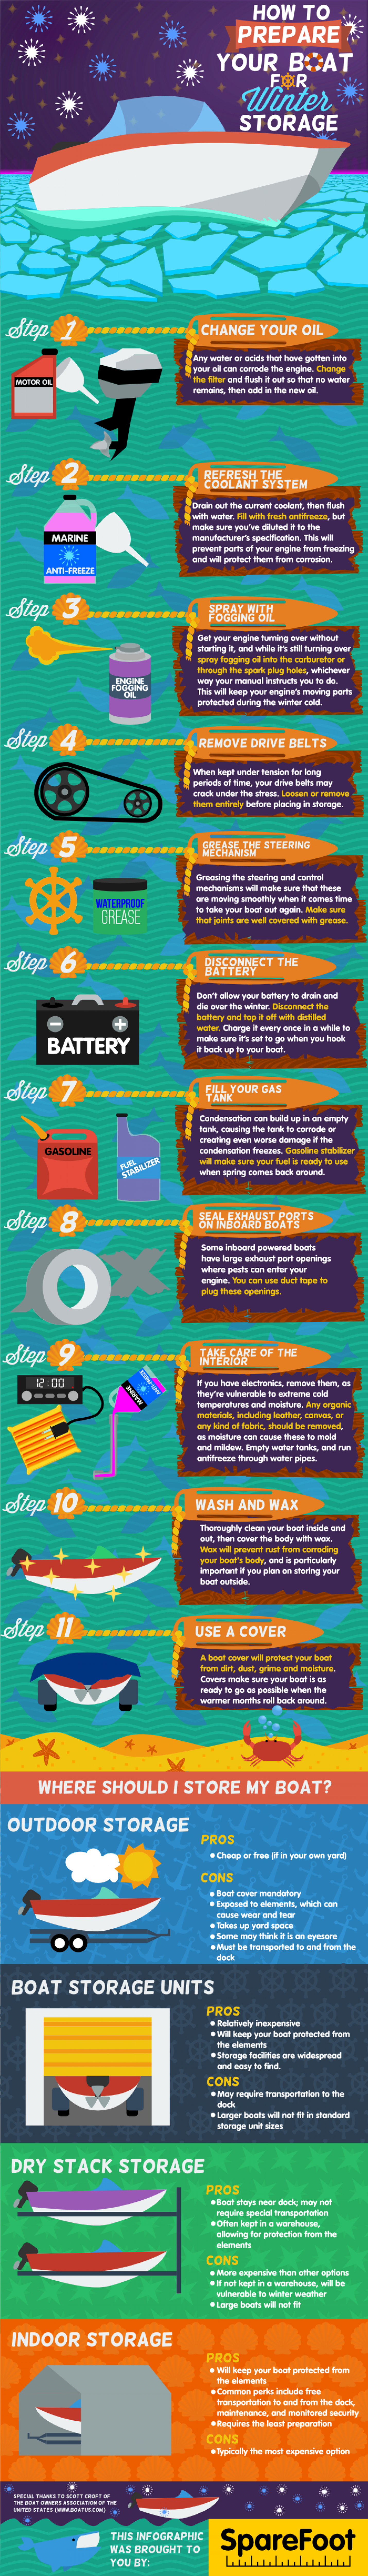 How To Prepare Your Boat for Winter Storage Infographic